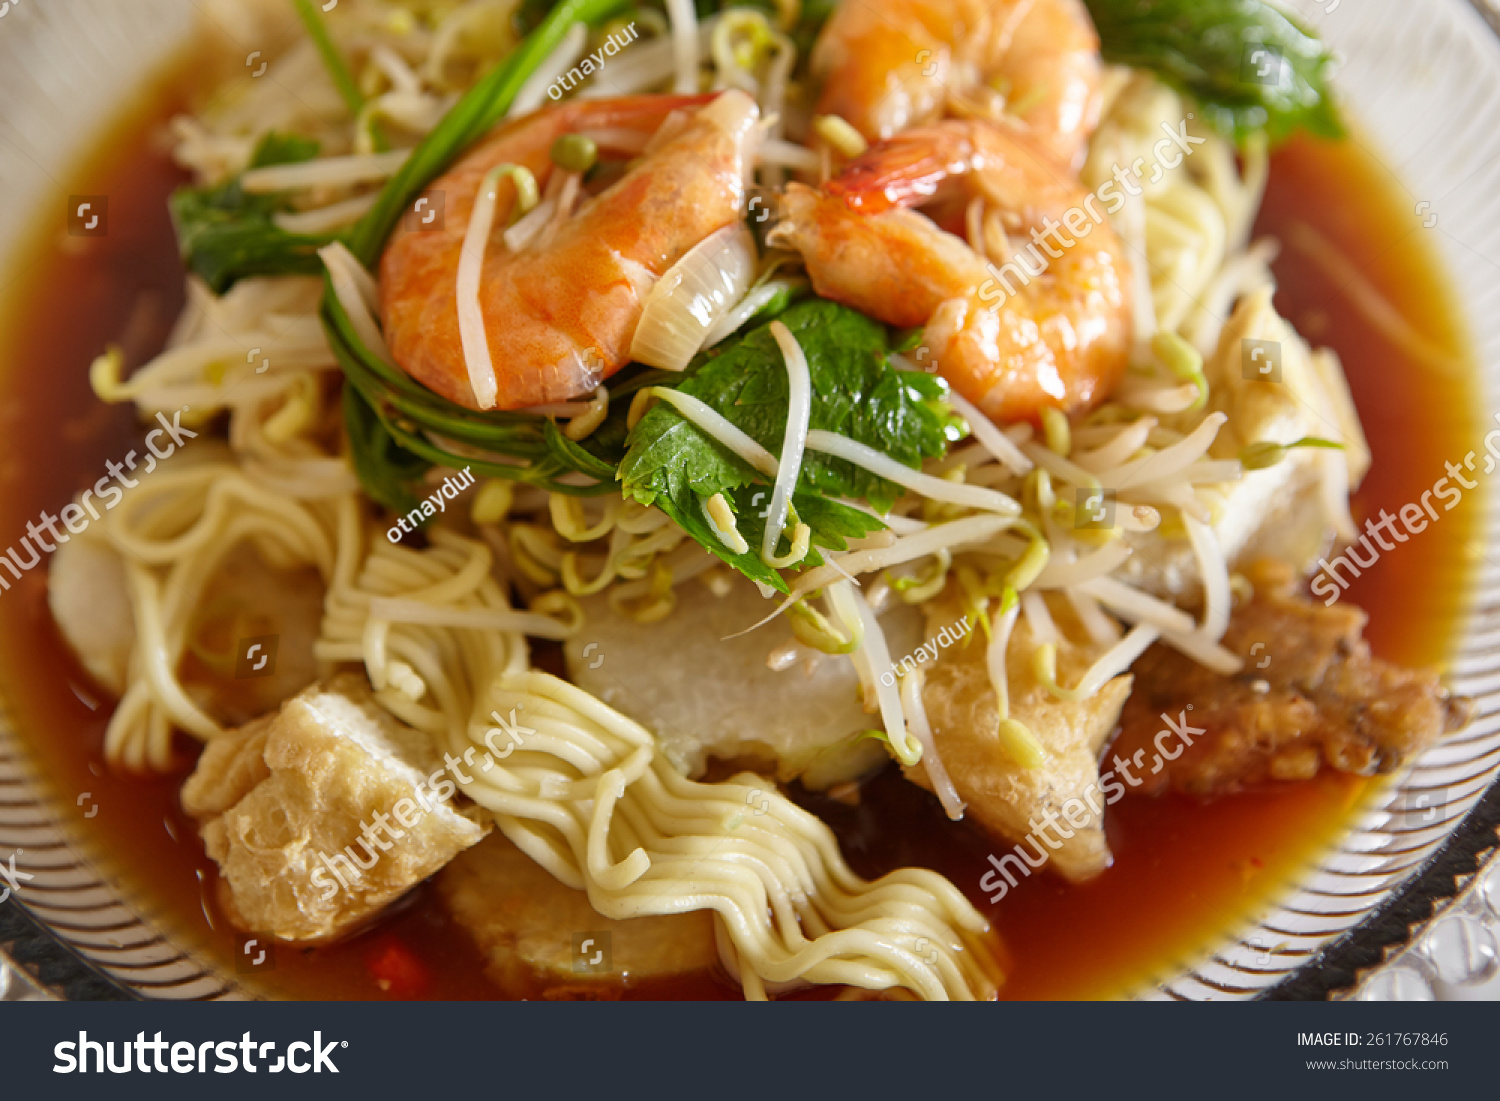 Lontong mie indonesian famous traditional food stock photo royalty lontong mie in indonesian for its famous traditional food or in english maybe spelled rice forumfinder Images